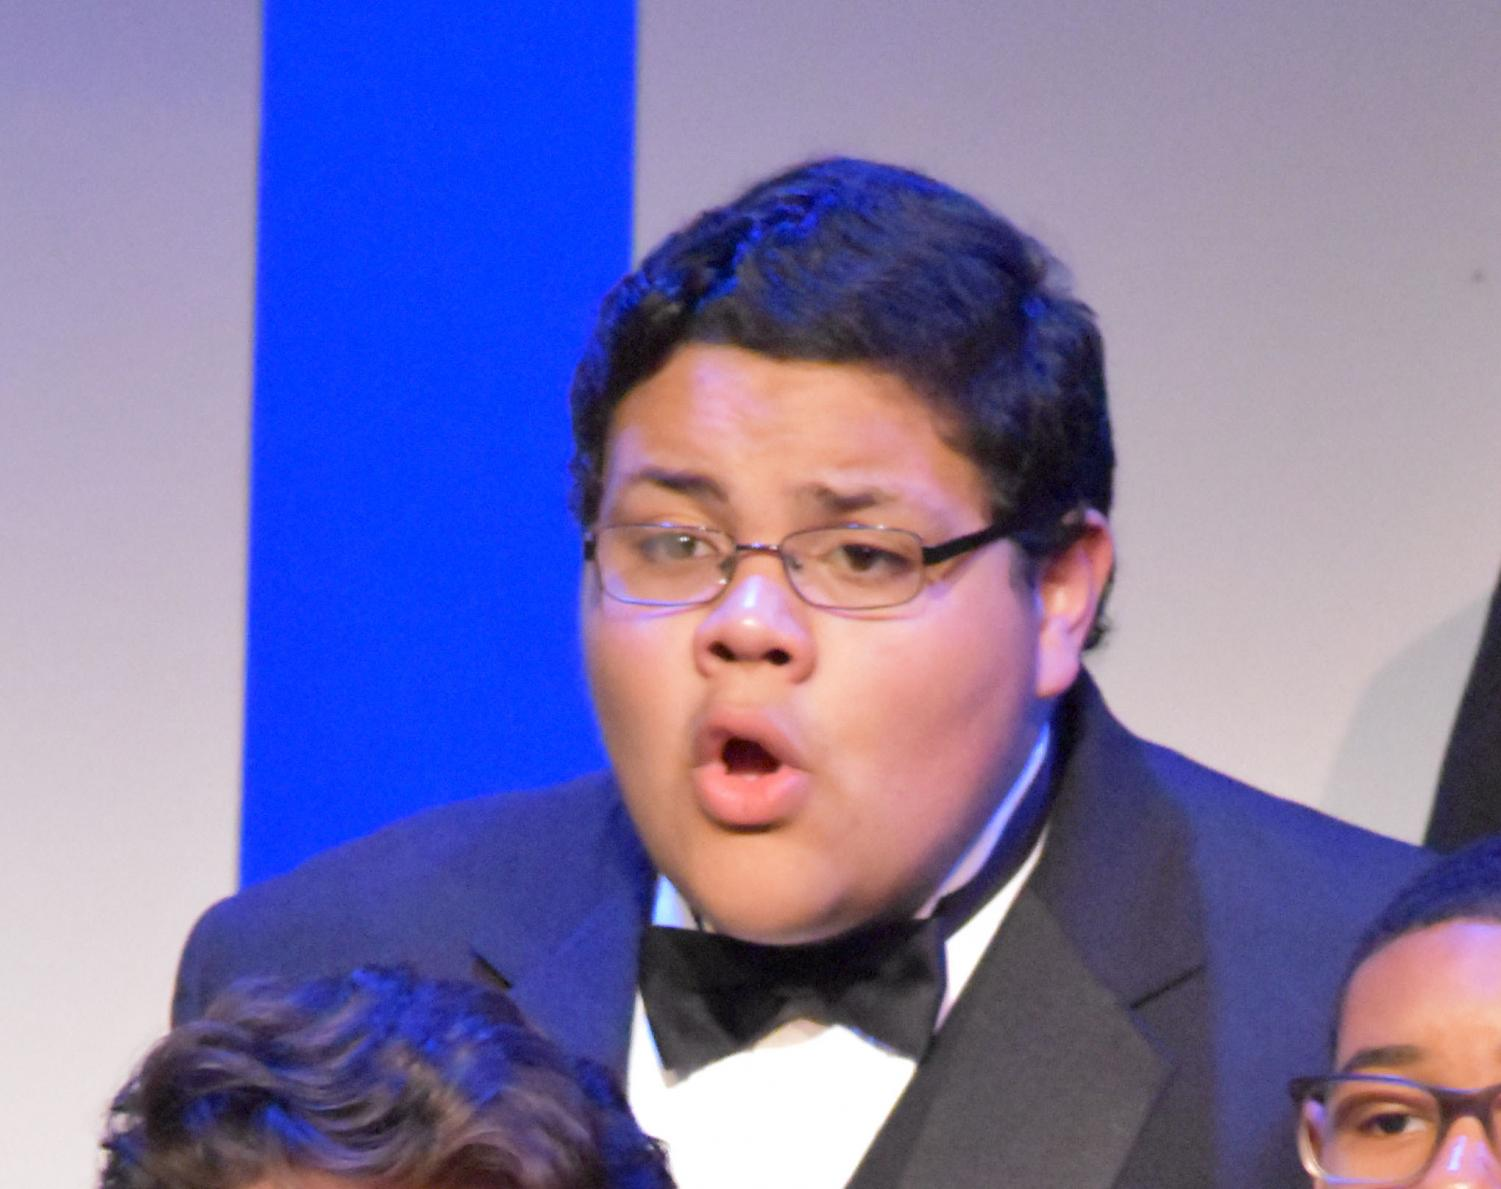 He's not just a homecoming prince. sophomore Luis Lopez is full of talent.